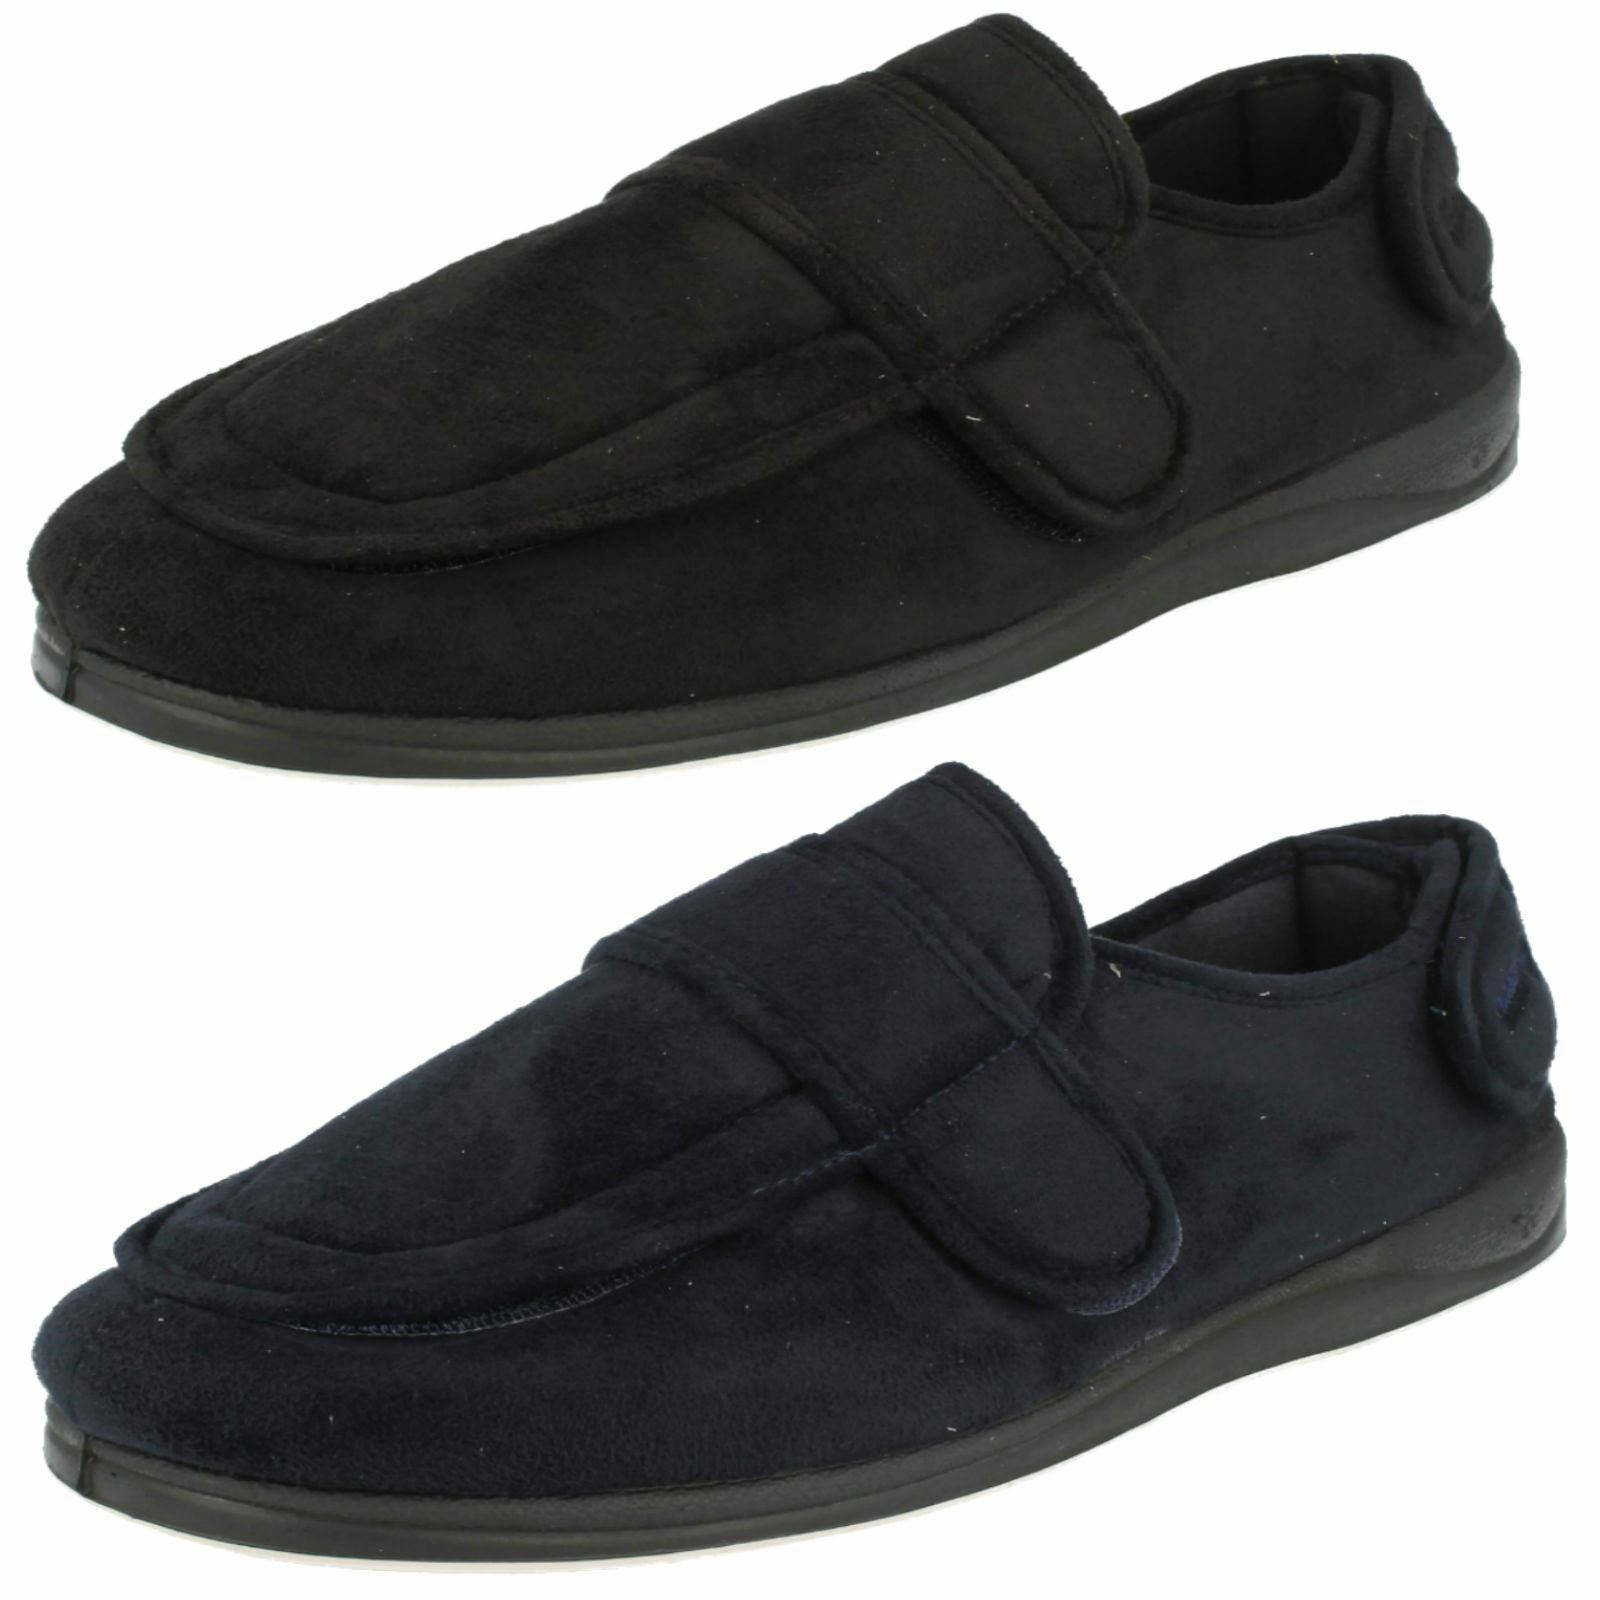 Mens Padders Wrap Navy or Black Rip Tape Strap Slippers Wide G Fitting